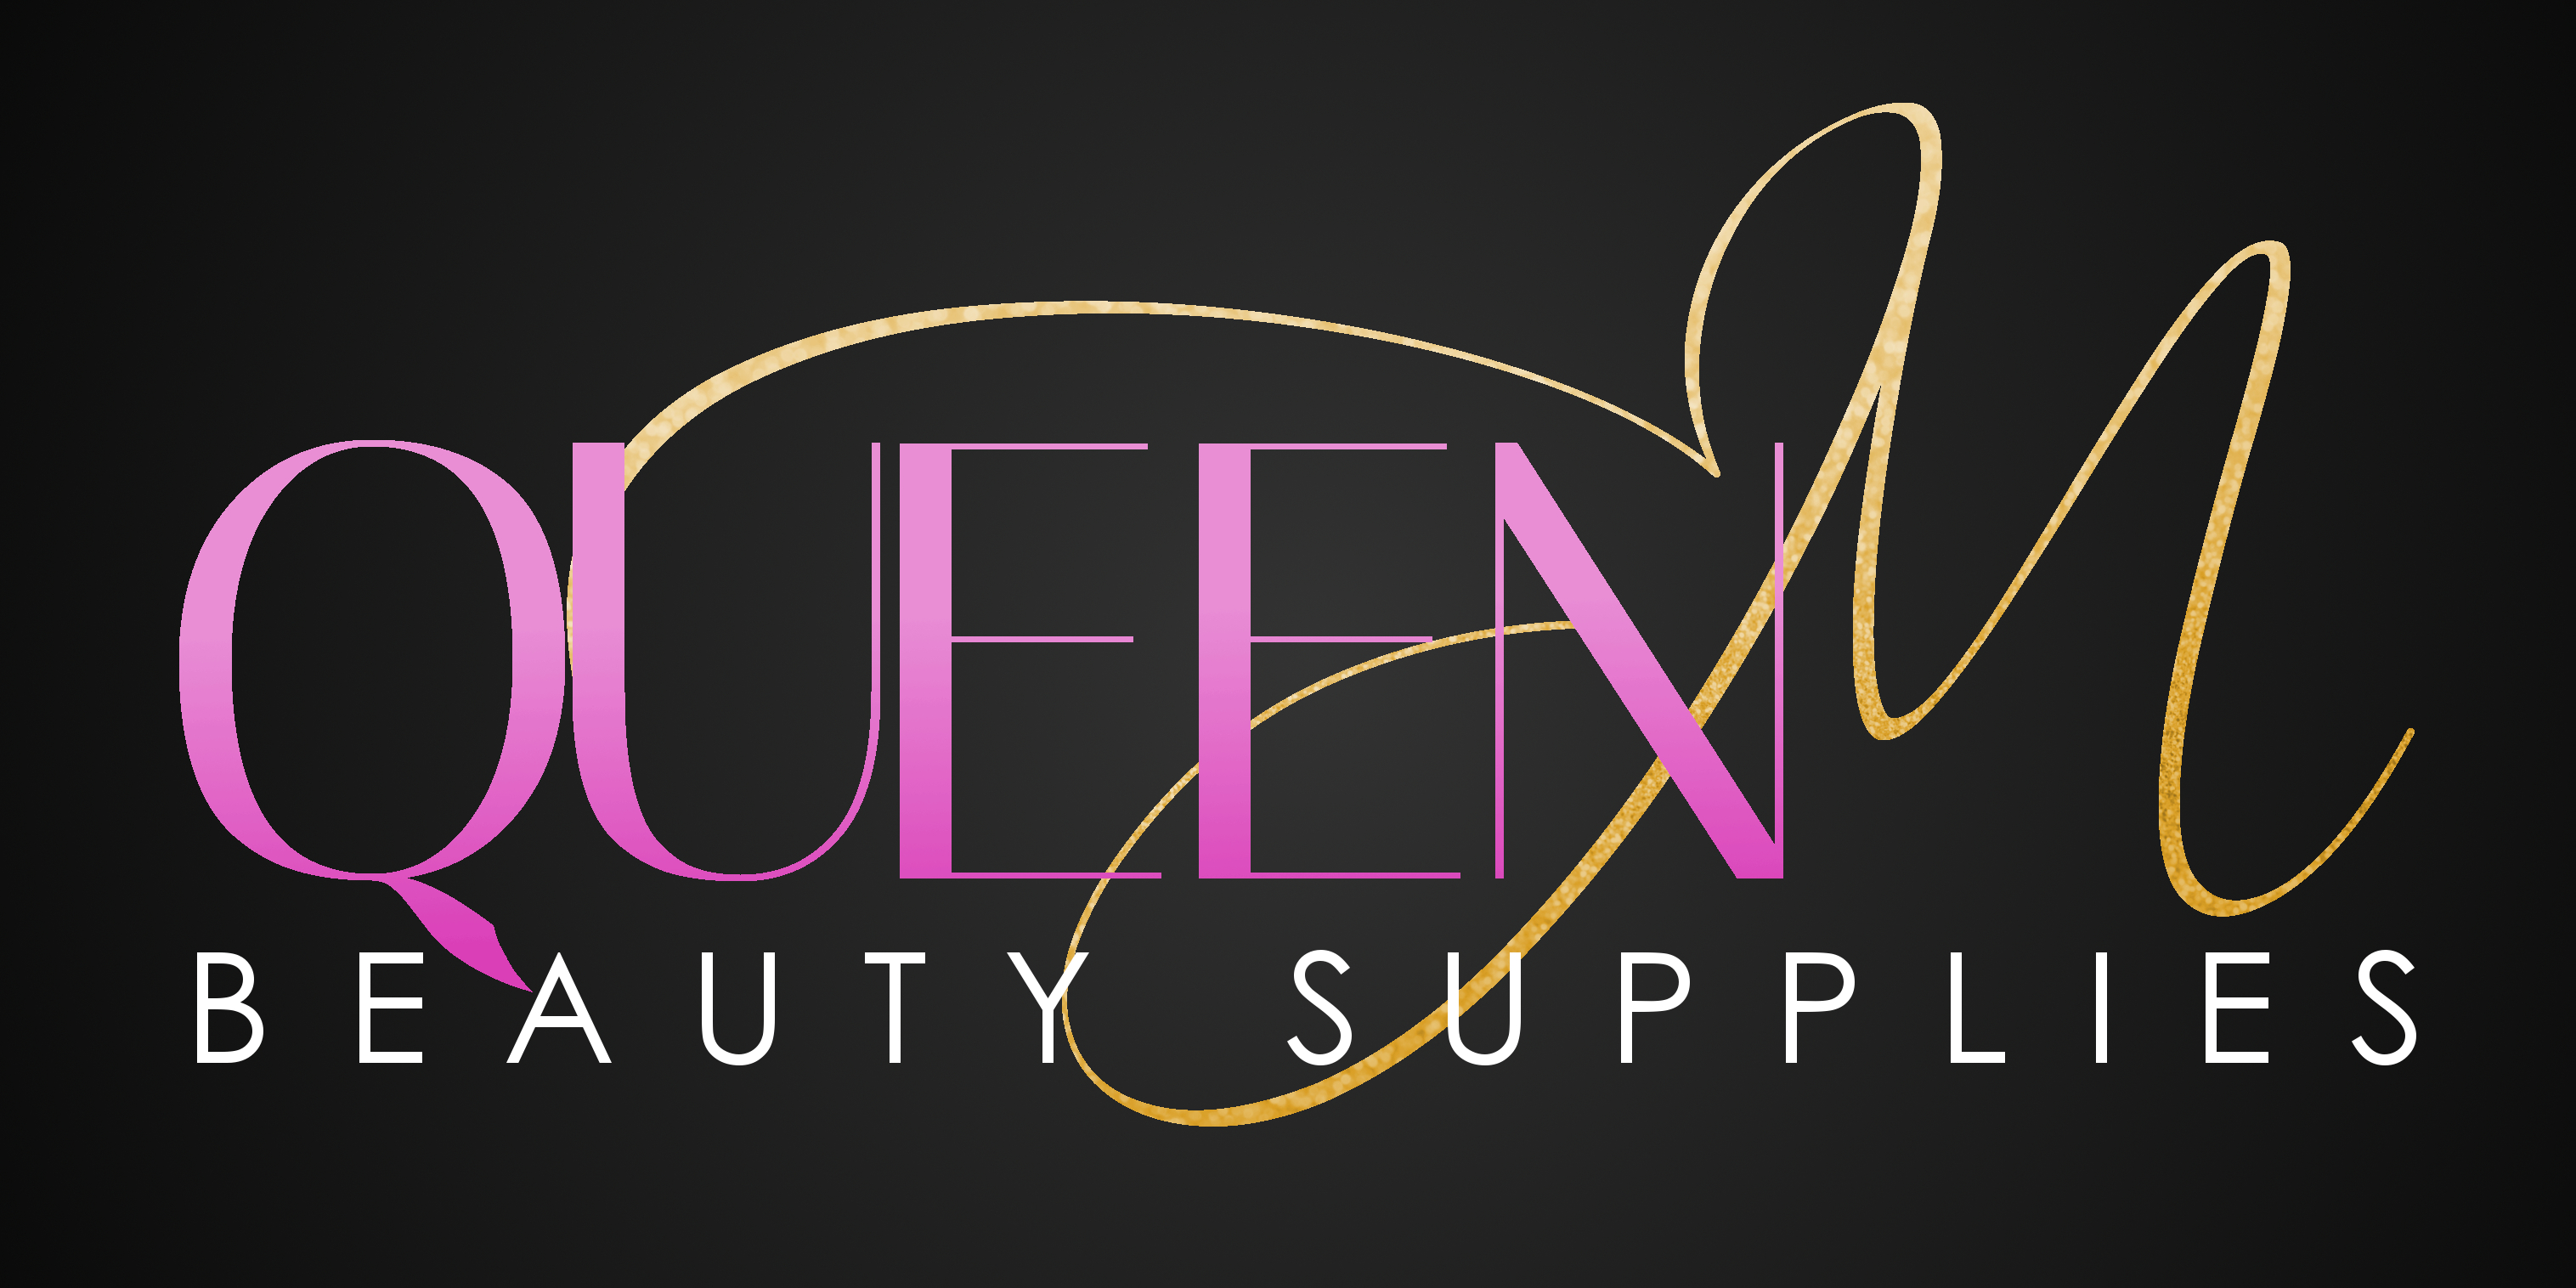 QueenMBeautySupplies_color1a